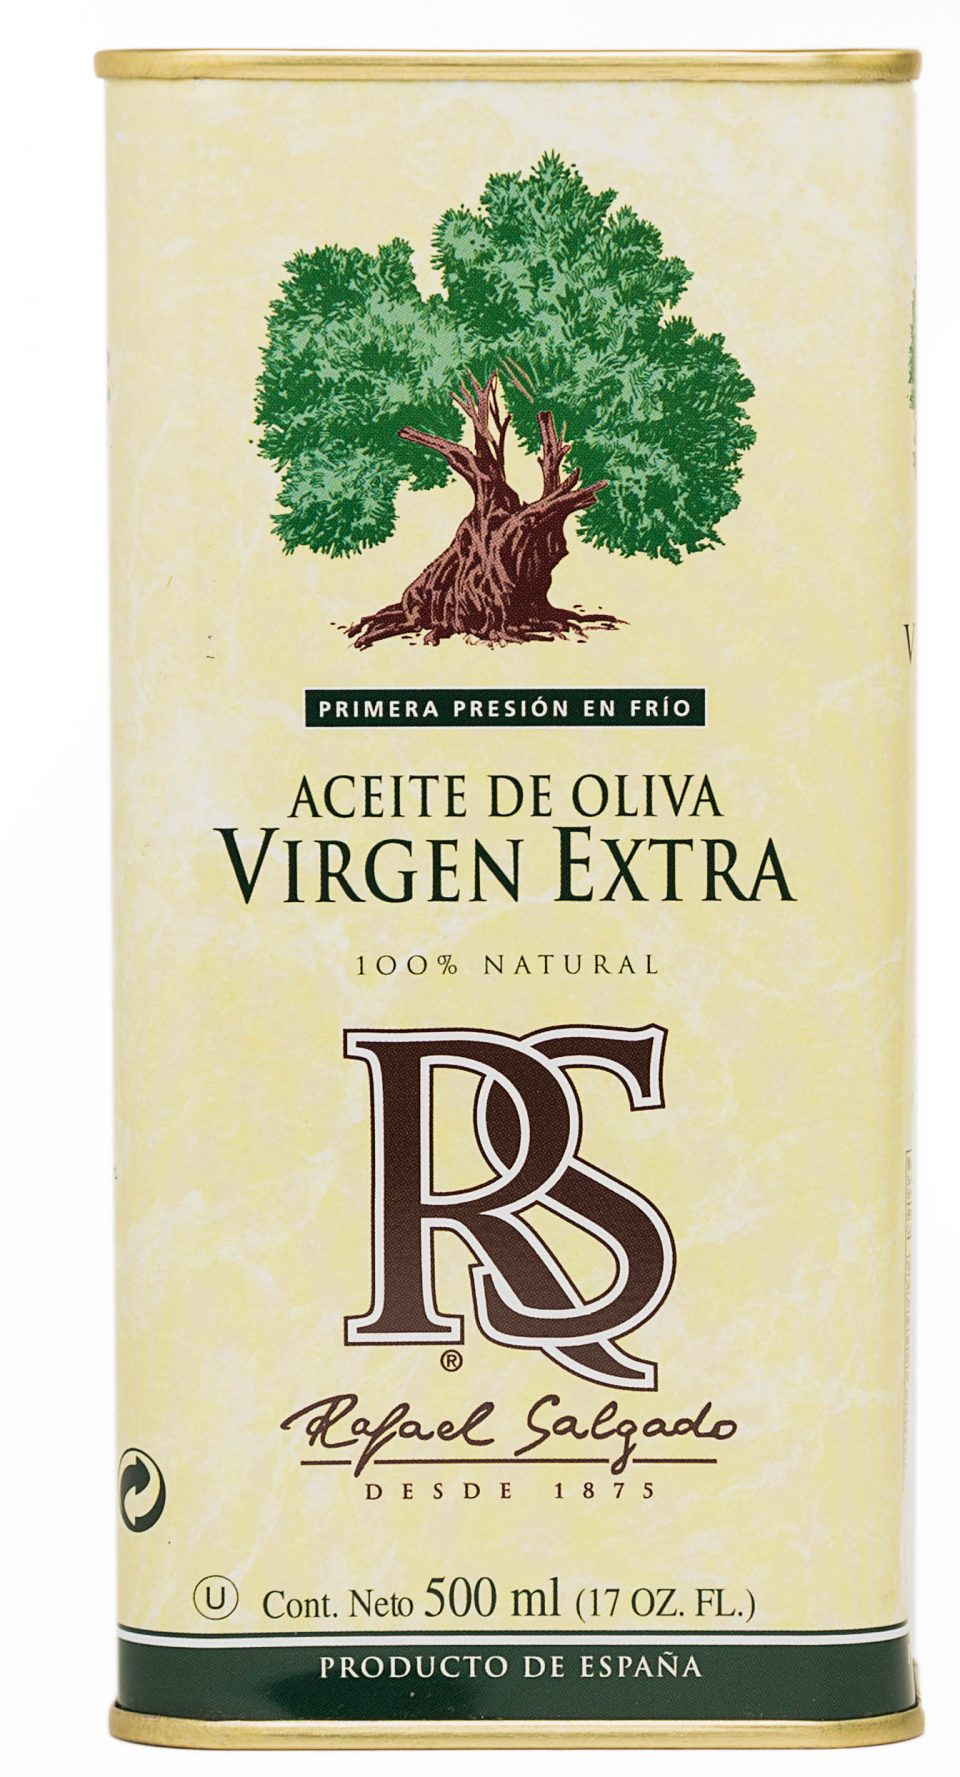 ext.Aceite de Oliva Virgen Extra lata 15x500 ml RS 500 ml